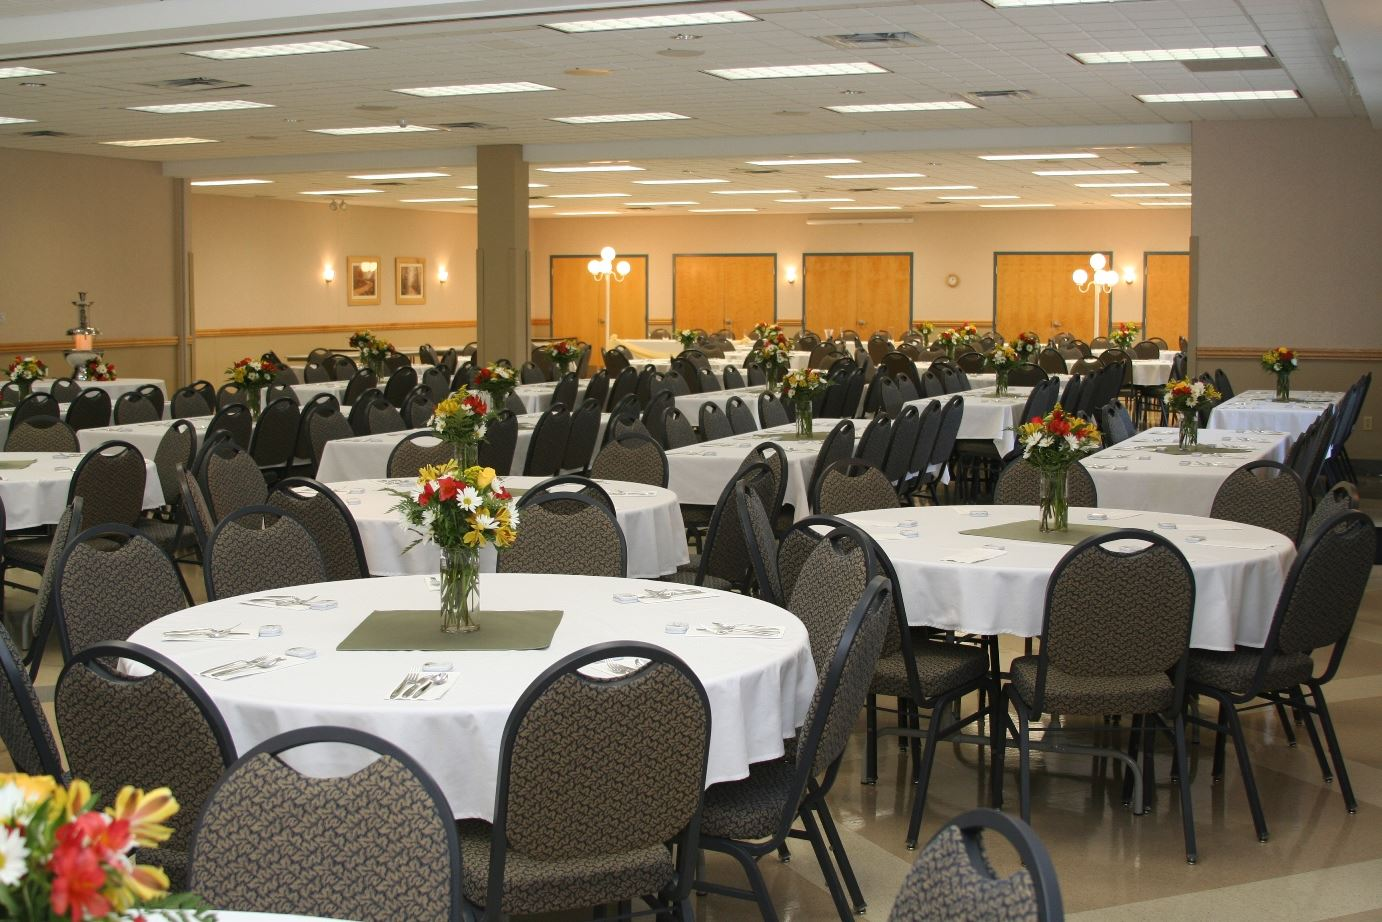 Banquet in a Meeting Room